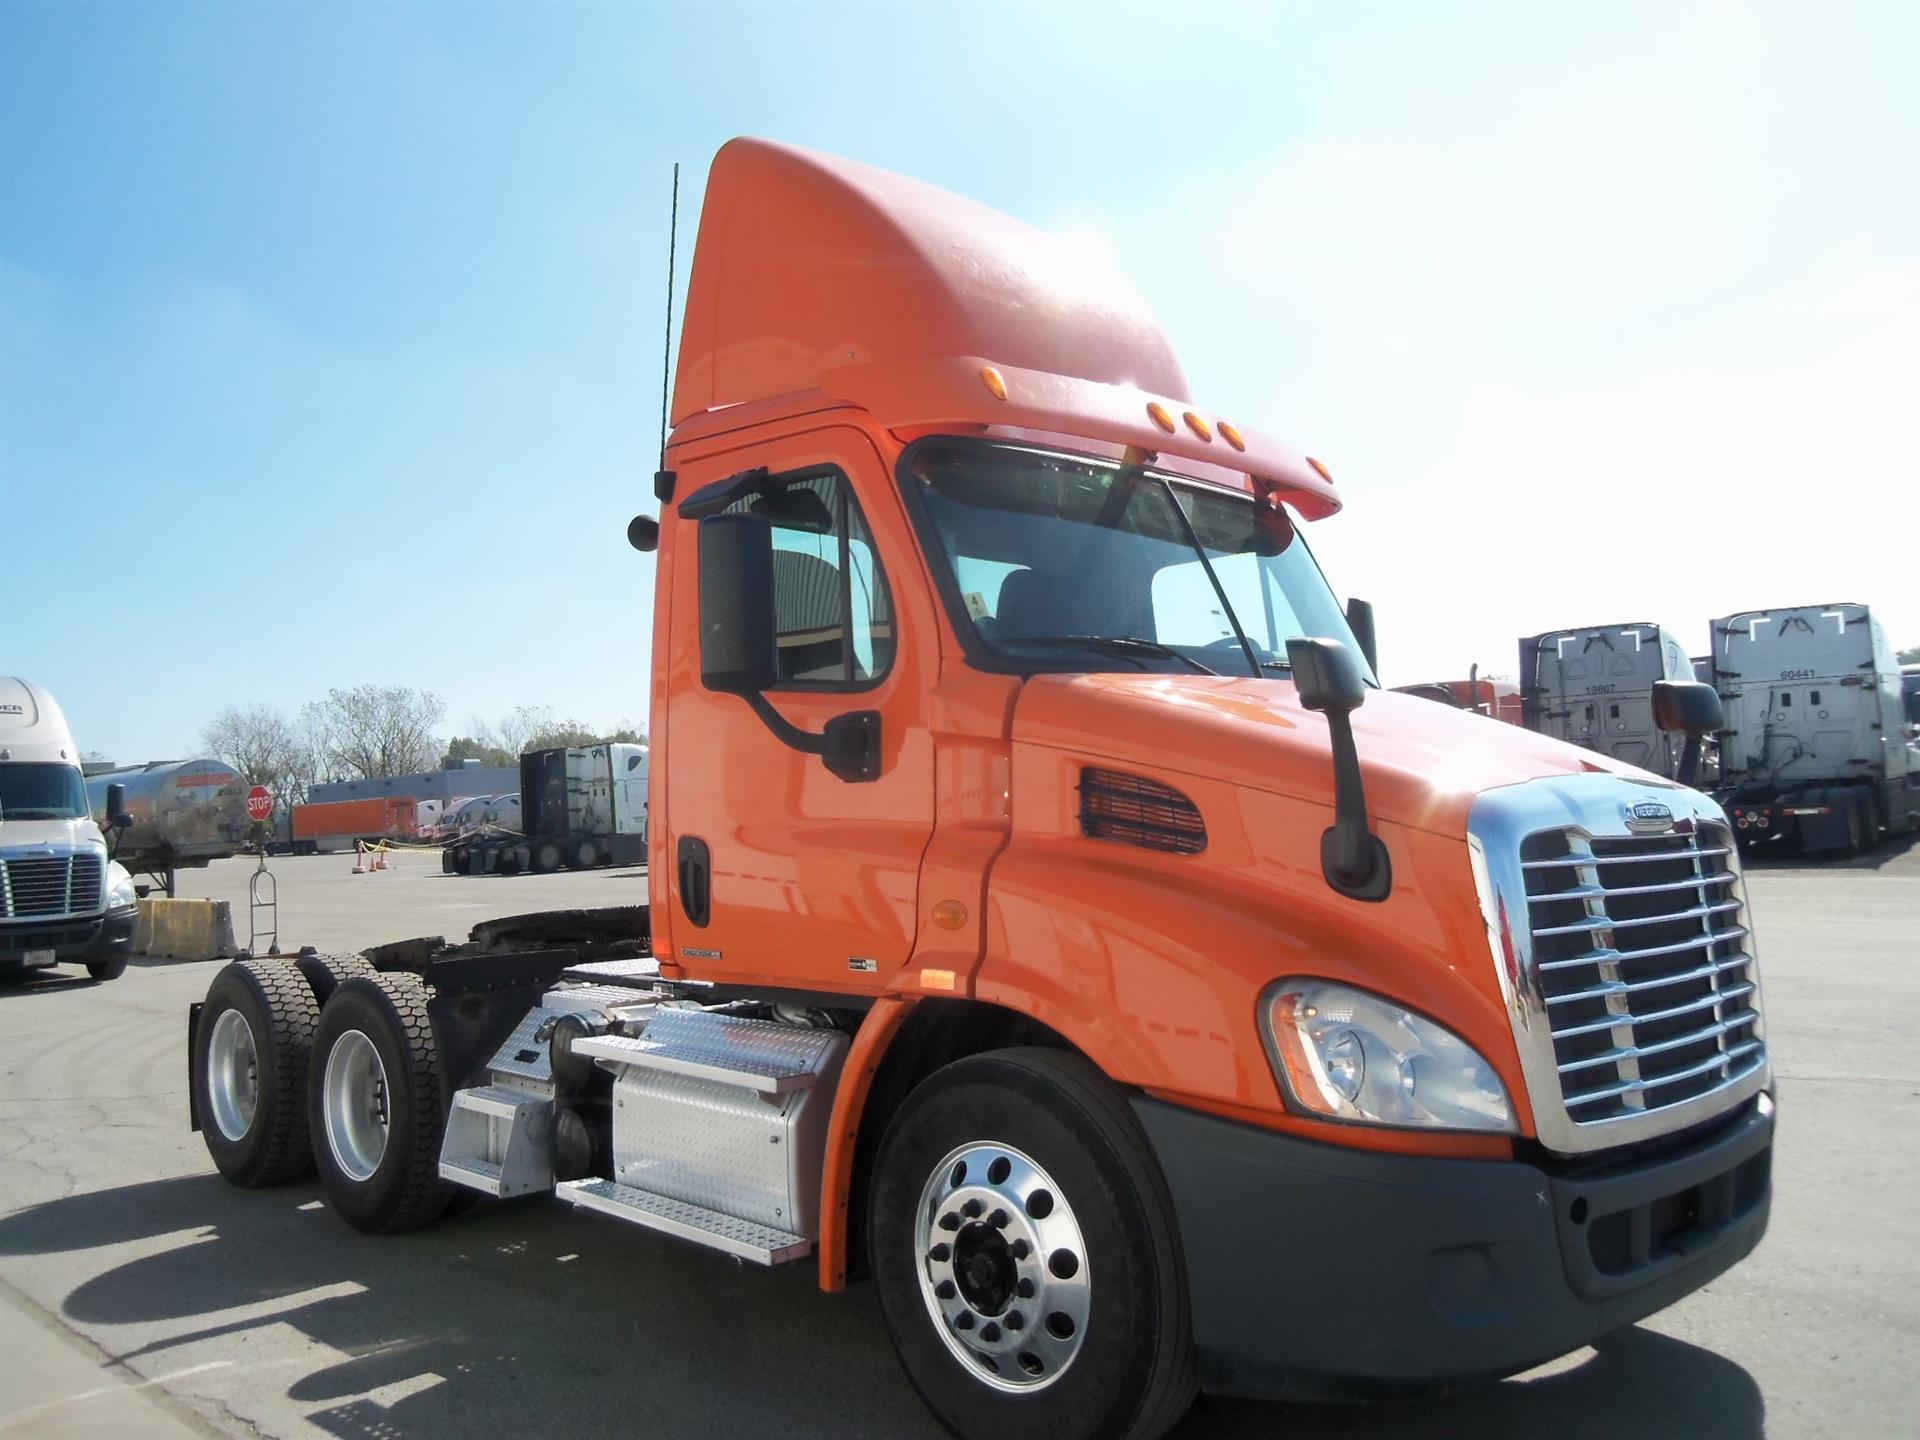 Used Daycabs For Sale Fuel Filter 04 14 0l Frieghtliner 2012 Freightliner Cascadia Daycab Truck 133941